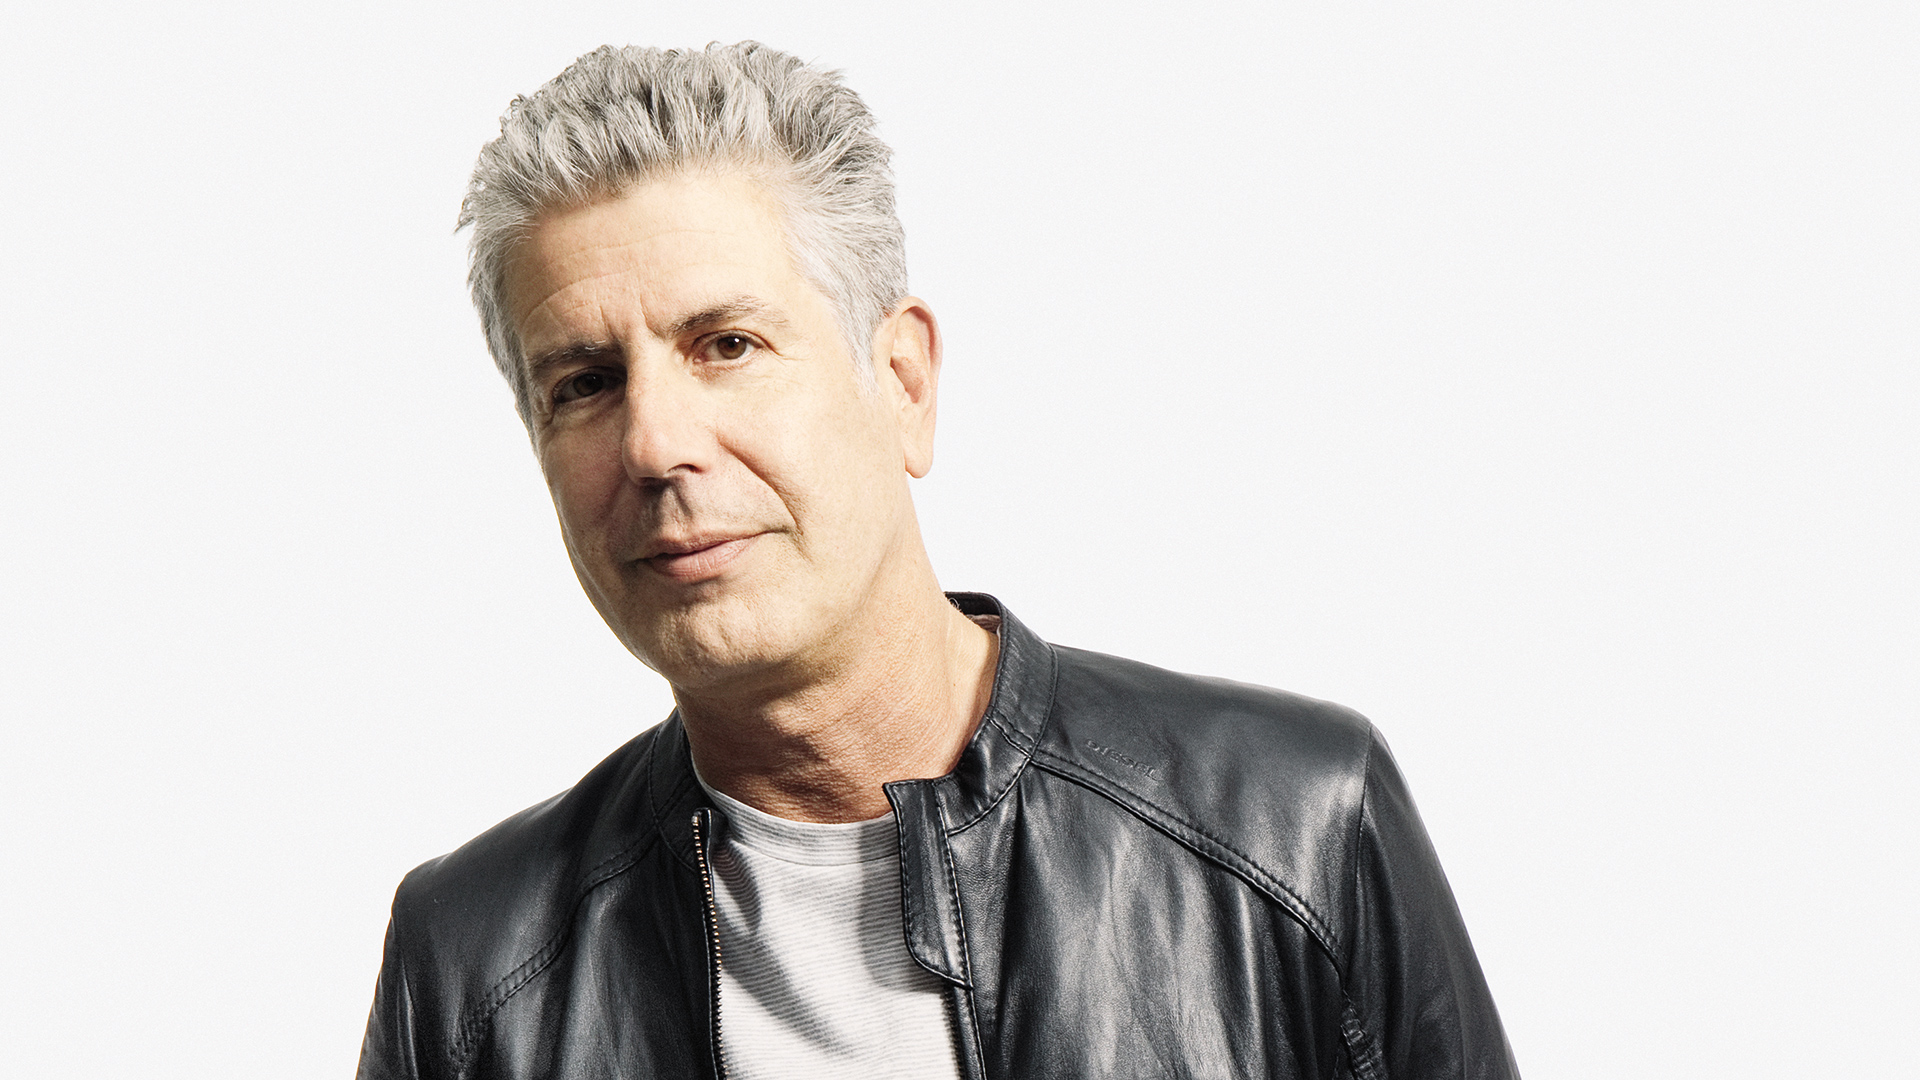 Anthony Bourdain - Biography